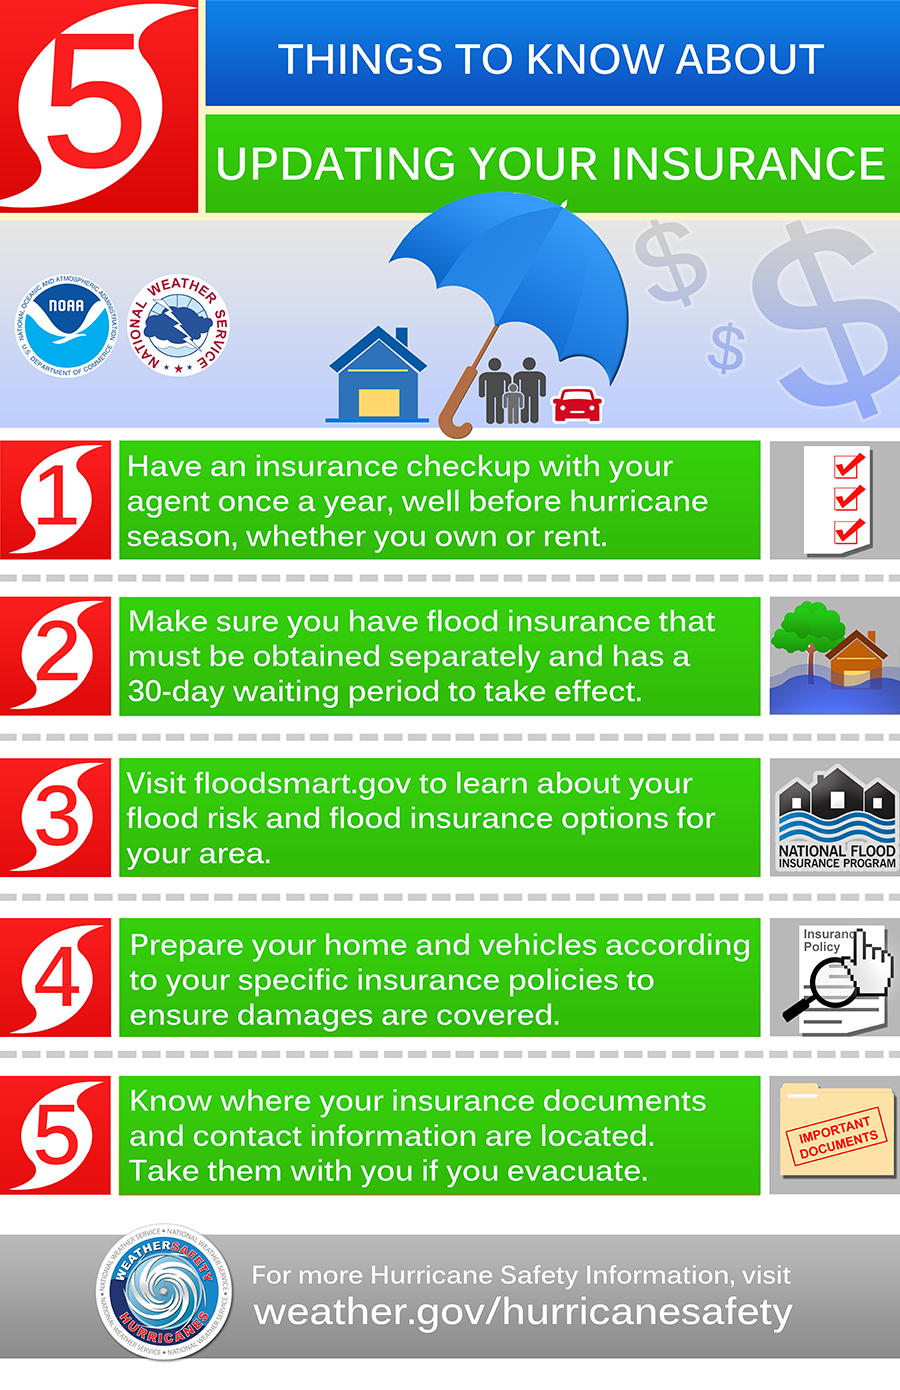 Things to know about updating your insurance